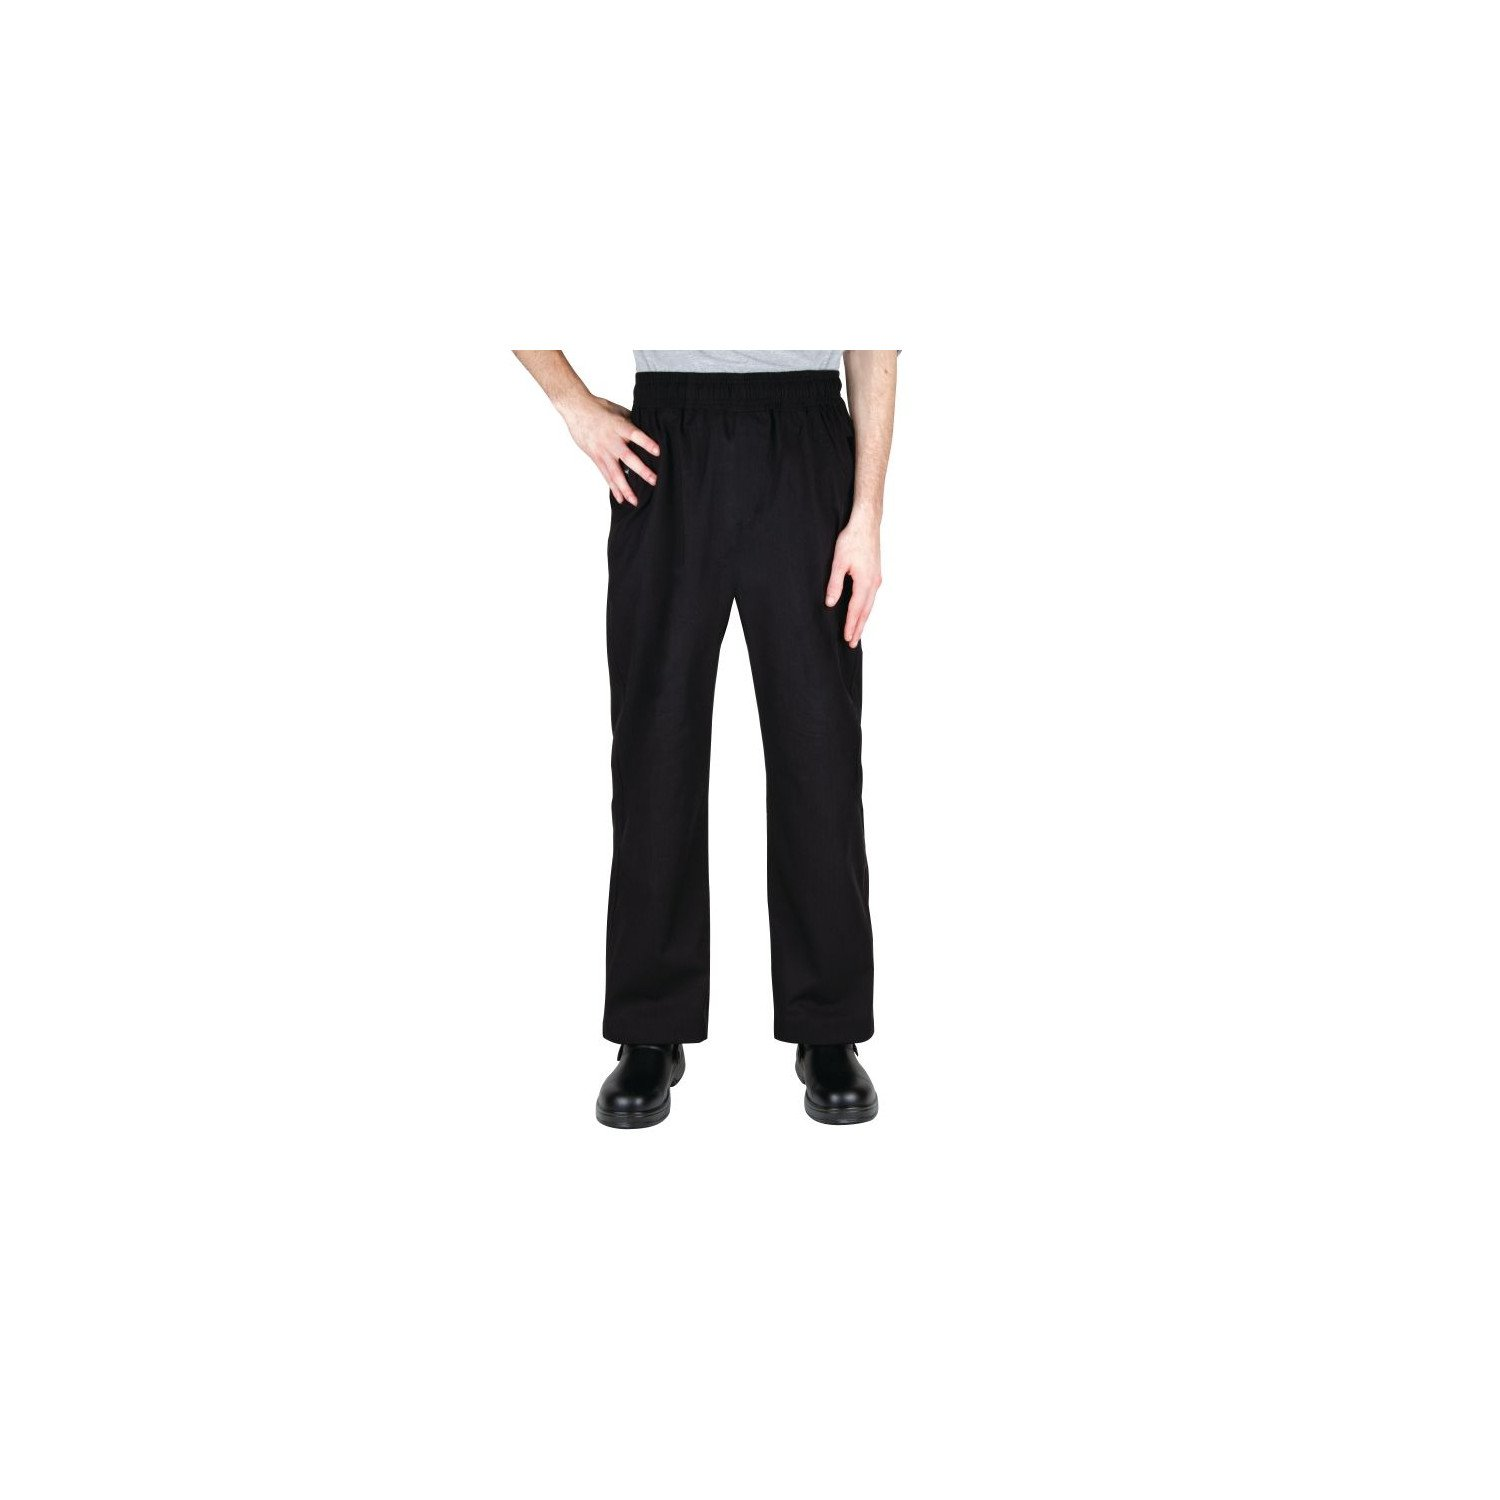 "Pantalon ""Baggy"" noir XXL CHEF WORKS Nisbets Vêtements"